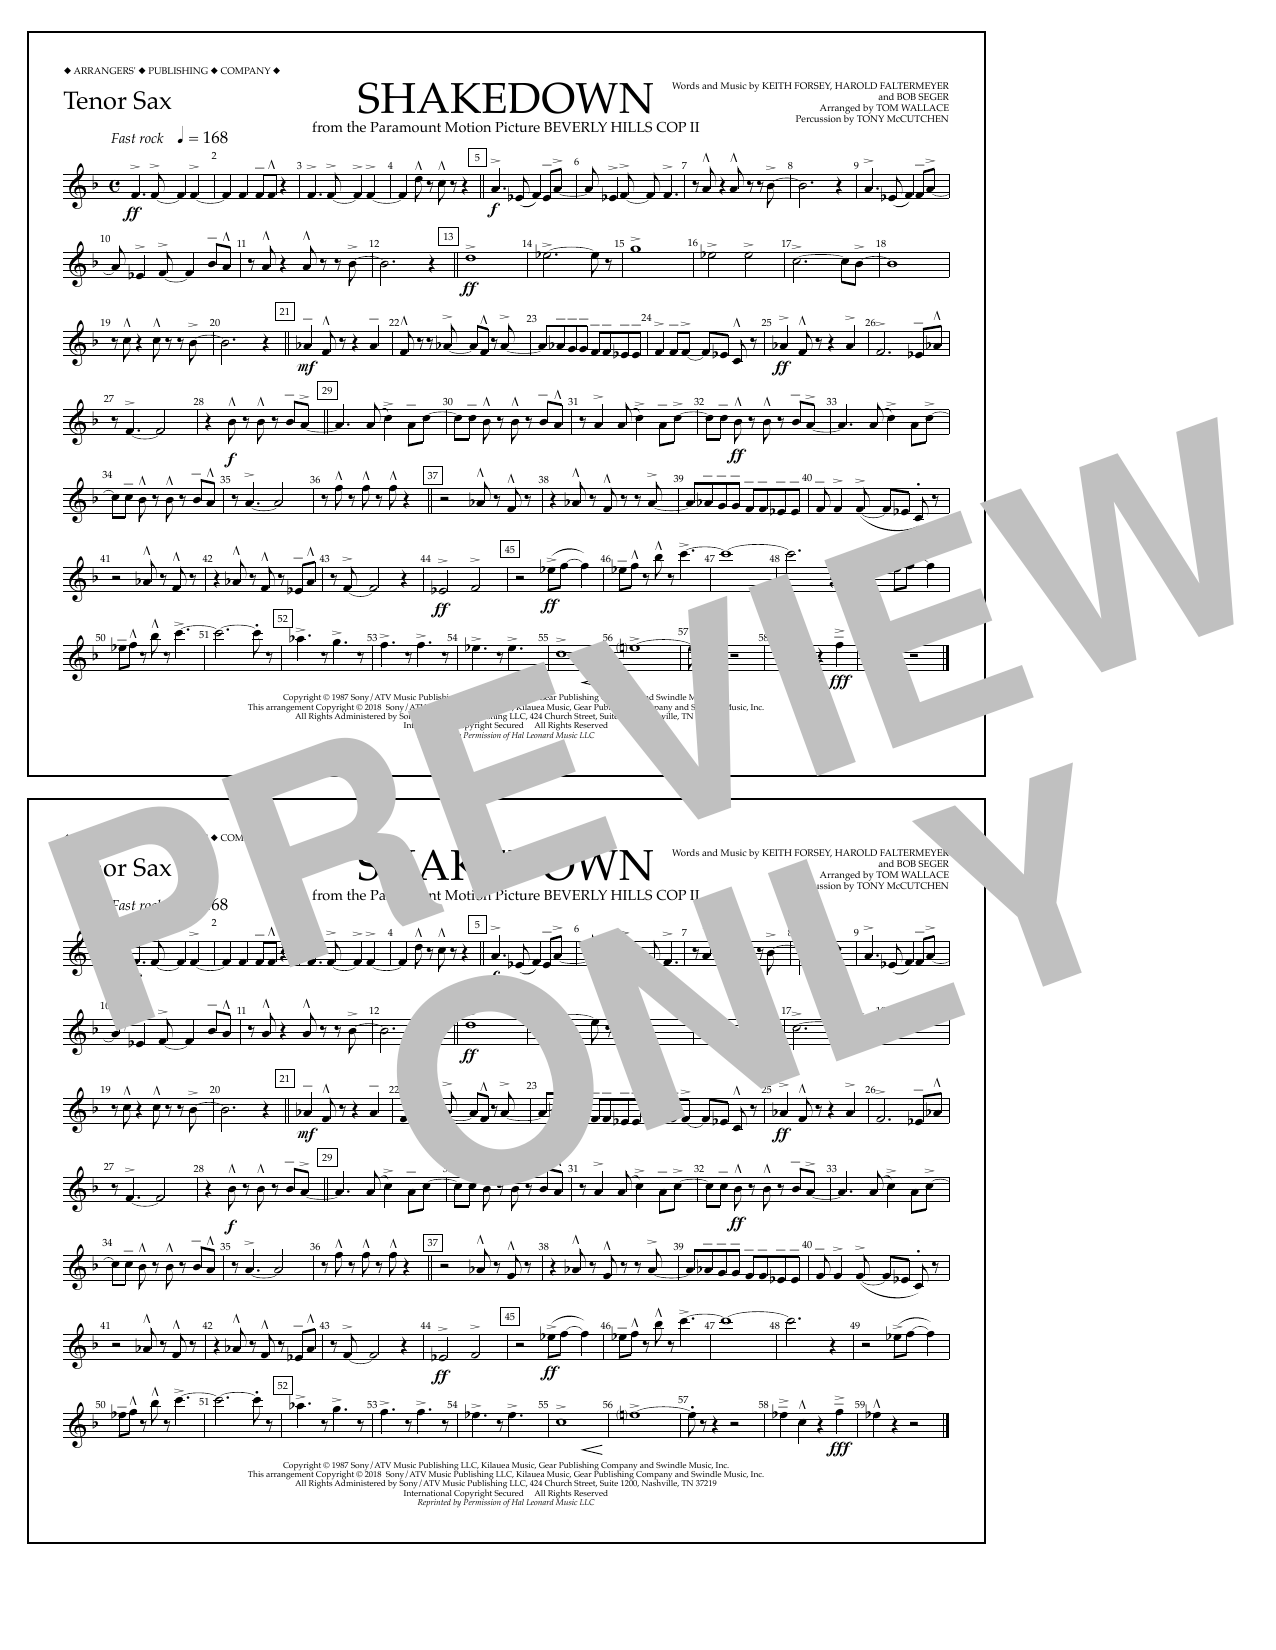 Tom Wallace Shakedown - Tenor Sax sheet music notes and chords. Download Printable PDF.